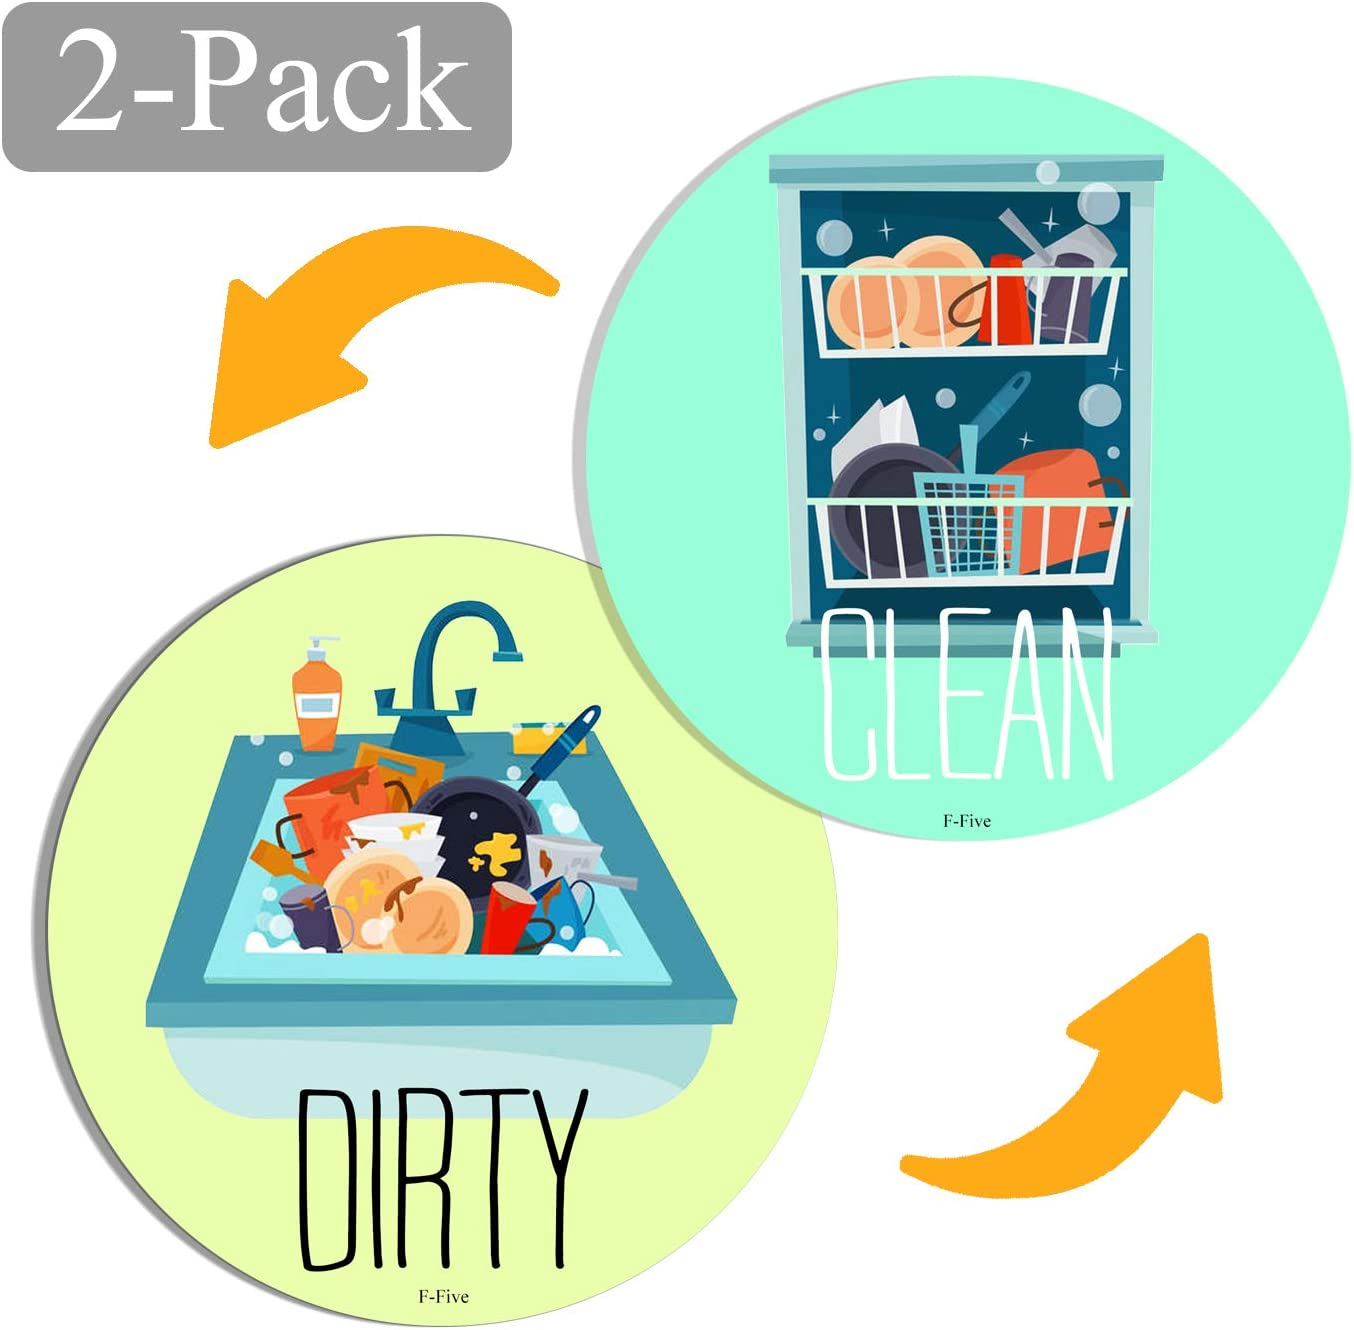 Newest Design 2-Pack Dishwasher Magnet Clean Dirty Sign Indicator,Universal Double Sided Kitchen DishWasher Magnet, Bonus Magnetic Plate For Kitchen Organization By PuFivewr! (Green dishwasher)